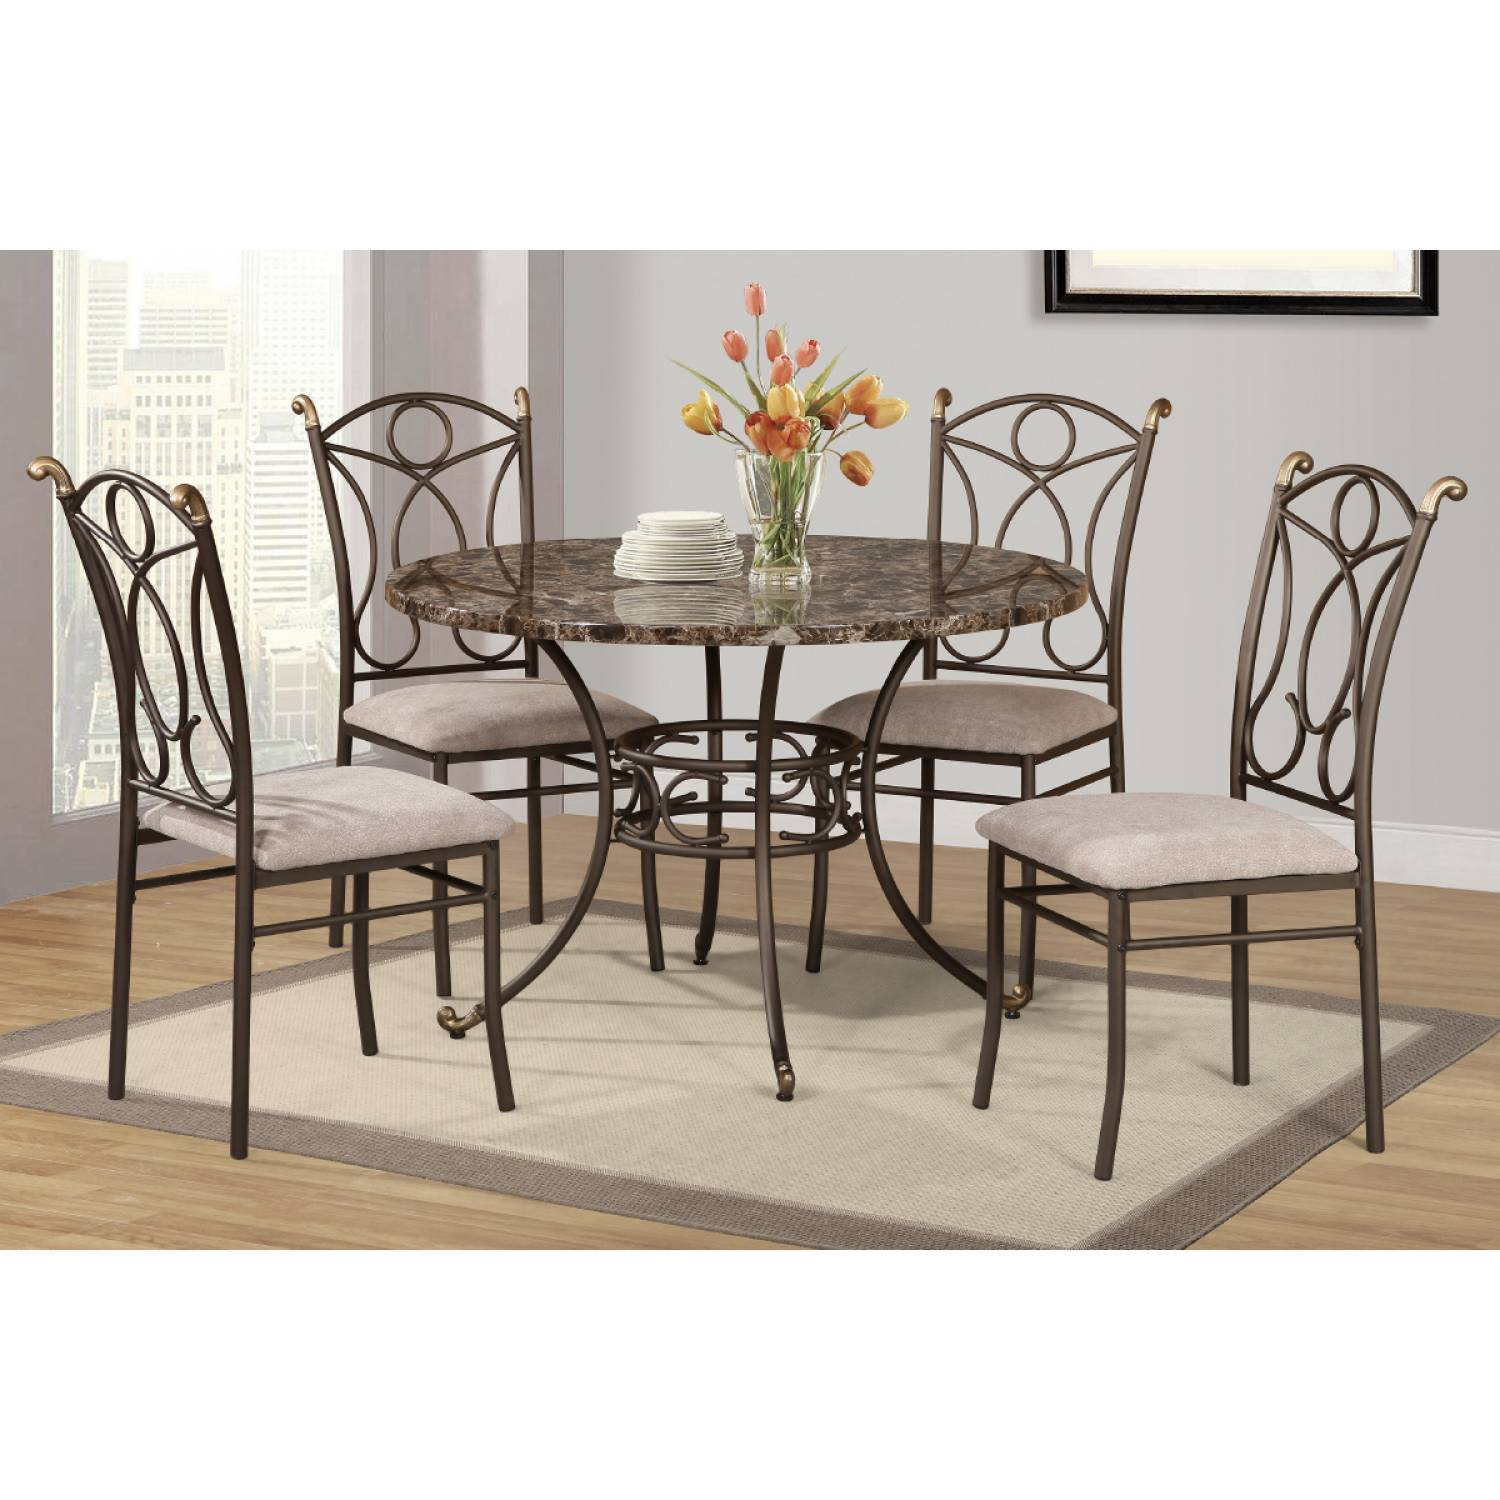 F2440 Dining Table